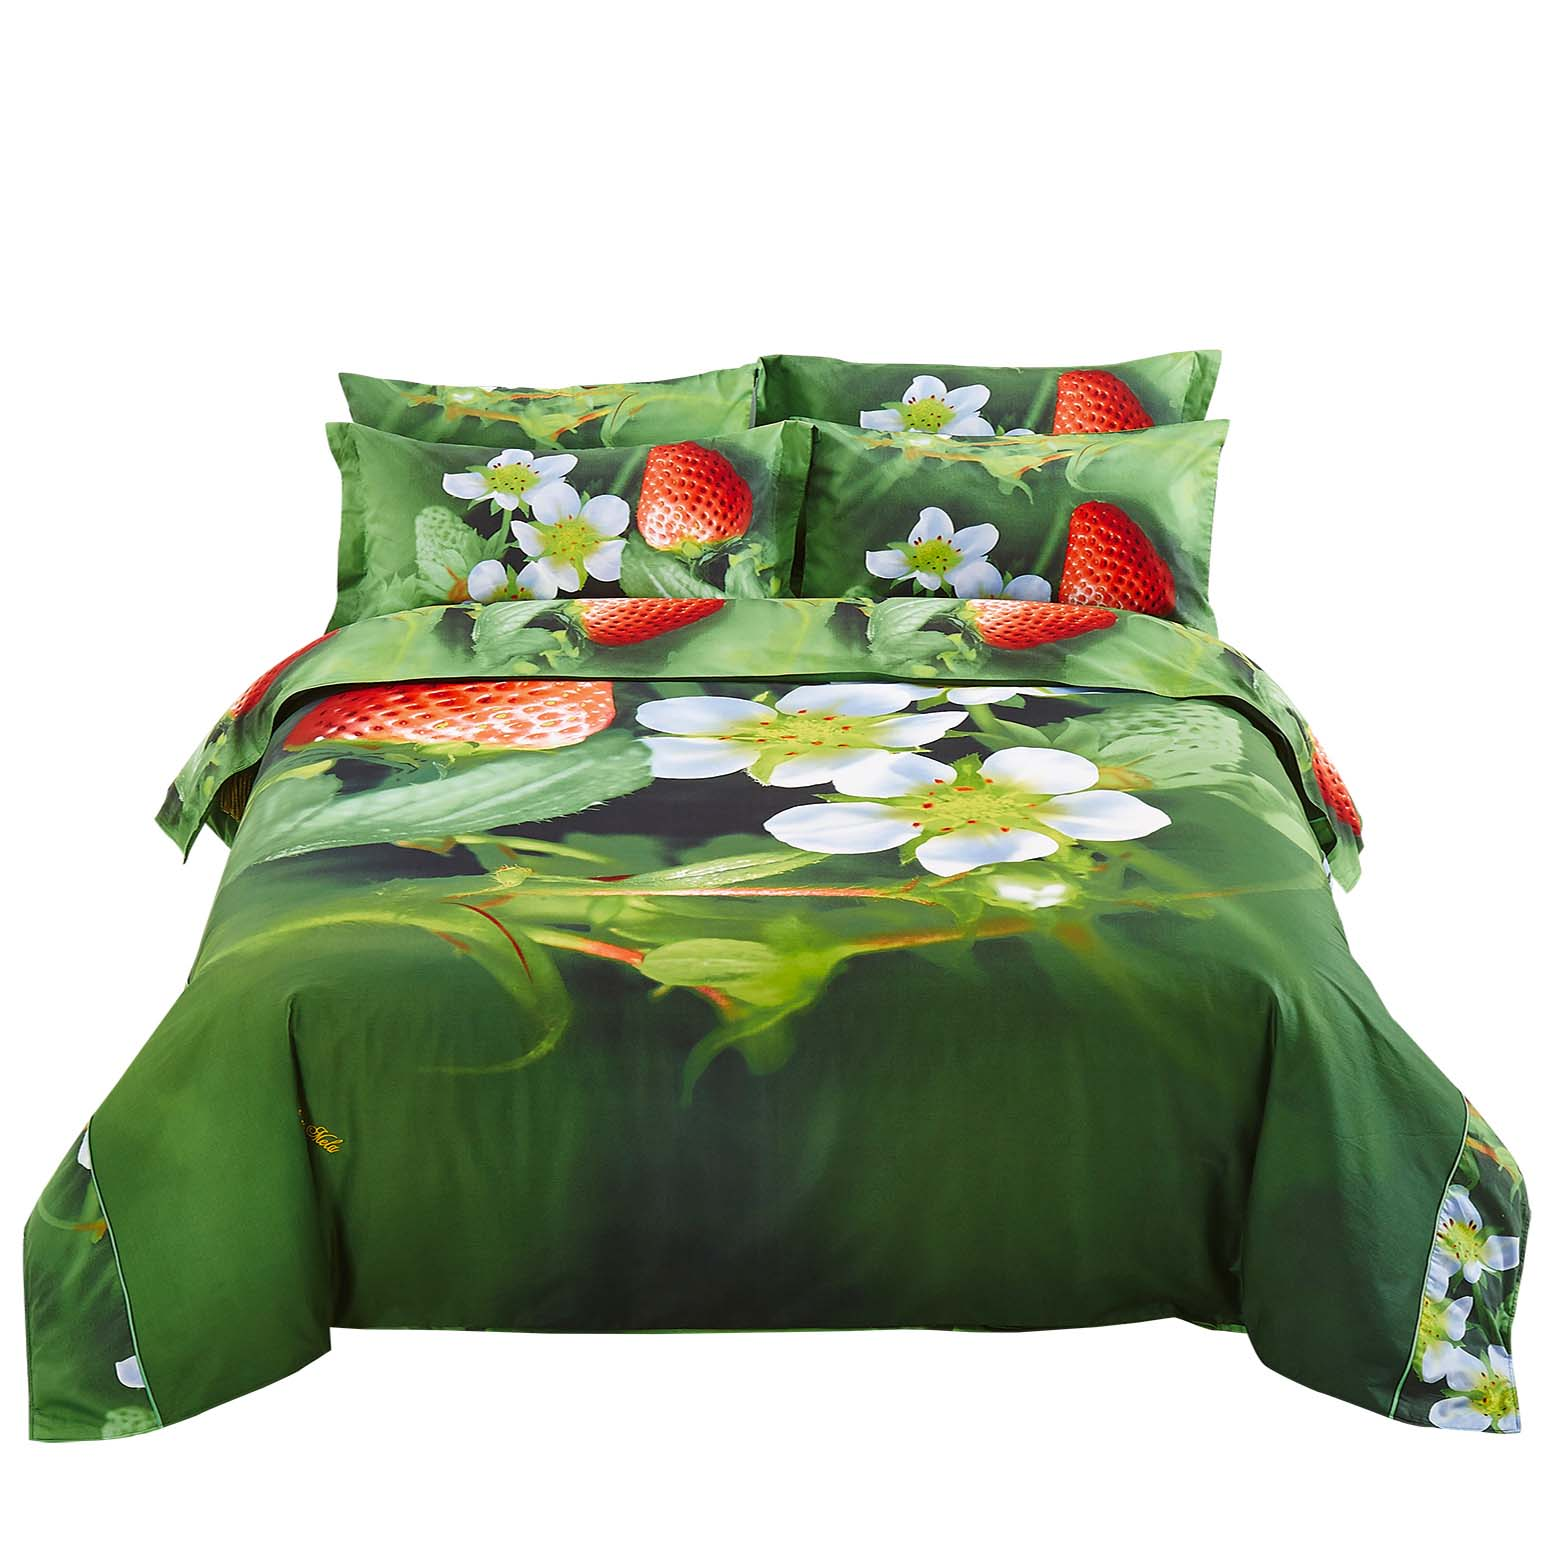 Dolce Mela Strawberry Queen Size 6 Piece Duvet Cover